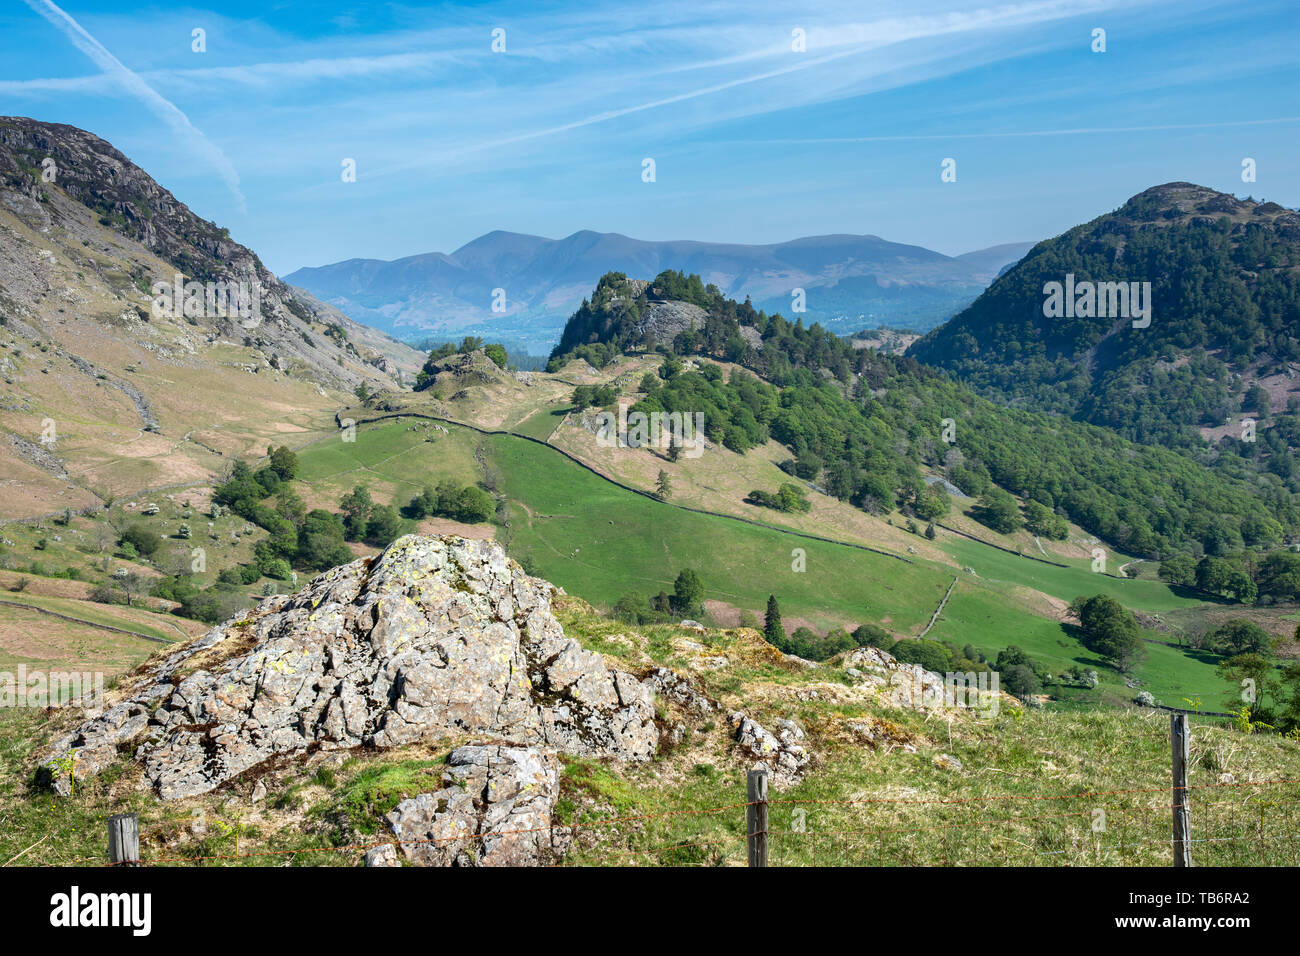 The view in Borrowdale Valley,  Cumbira, Lake District National Park UK which forms part of the Allerdale Ramble, with Castle Crag in the background - Stock Image